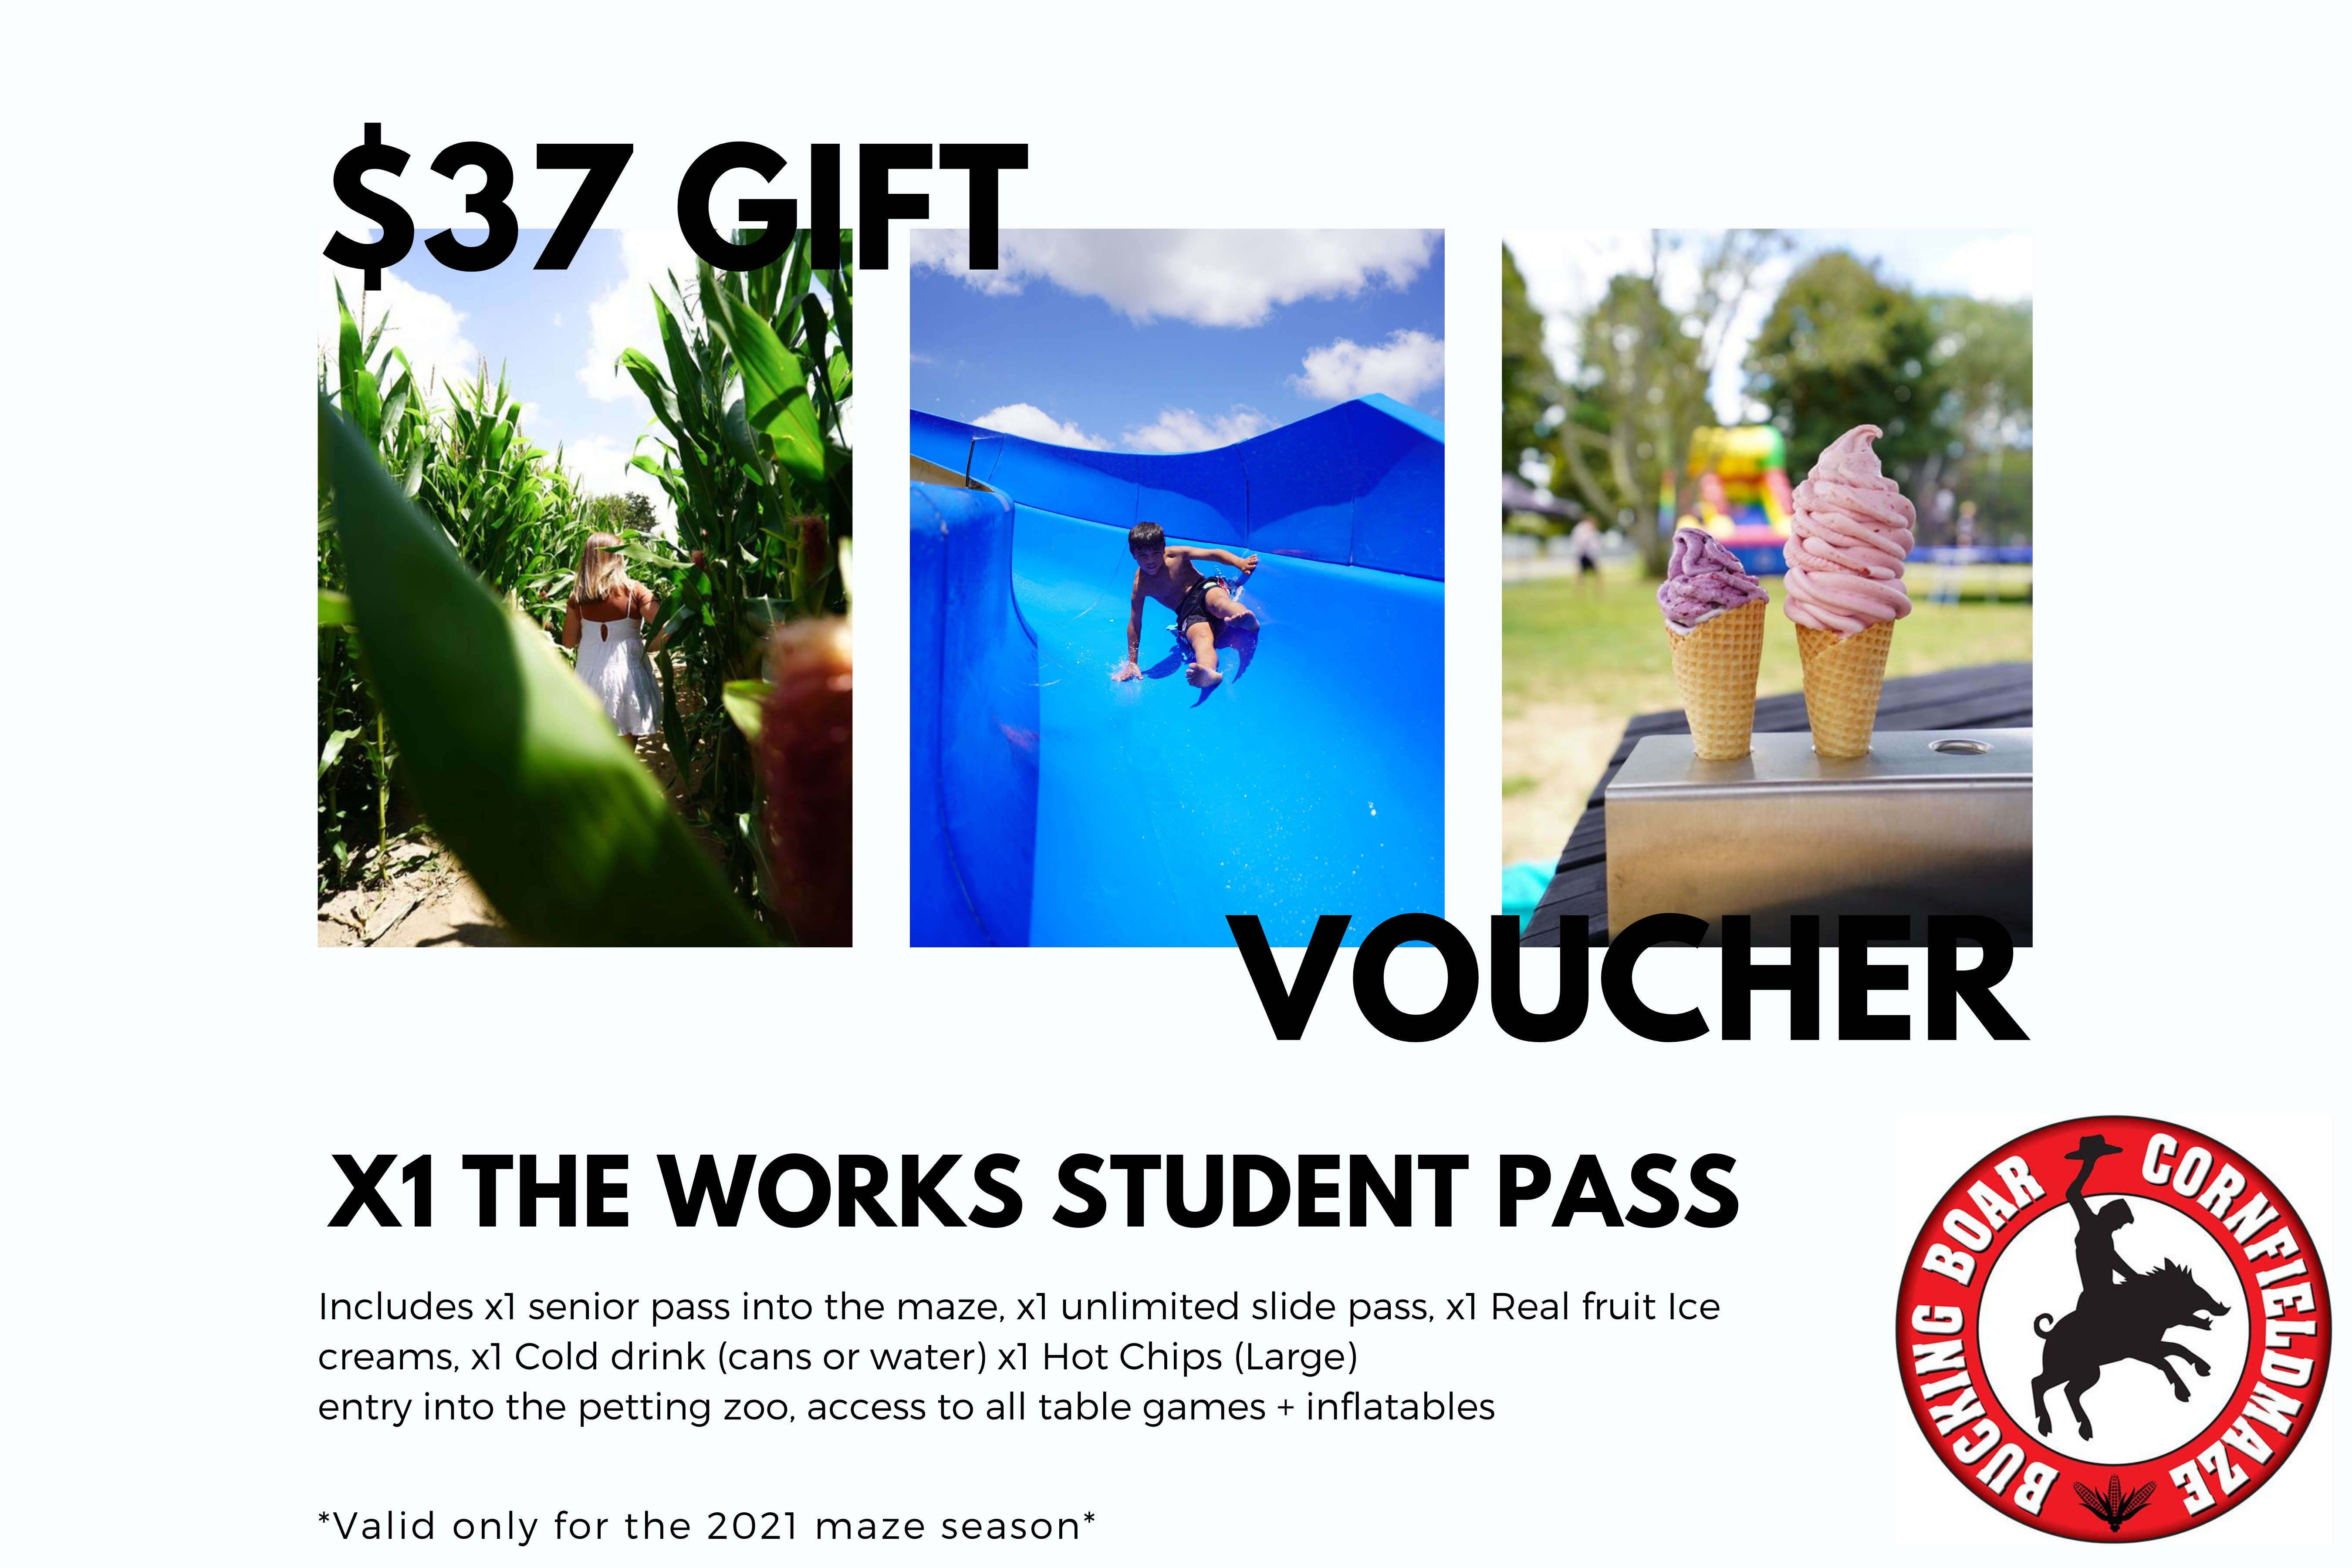 Gift Voucher - The Works Student Pass